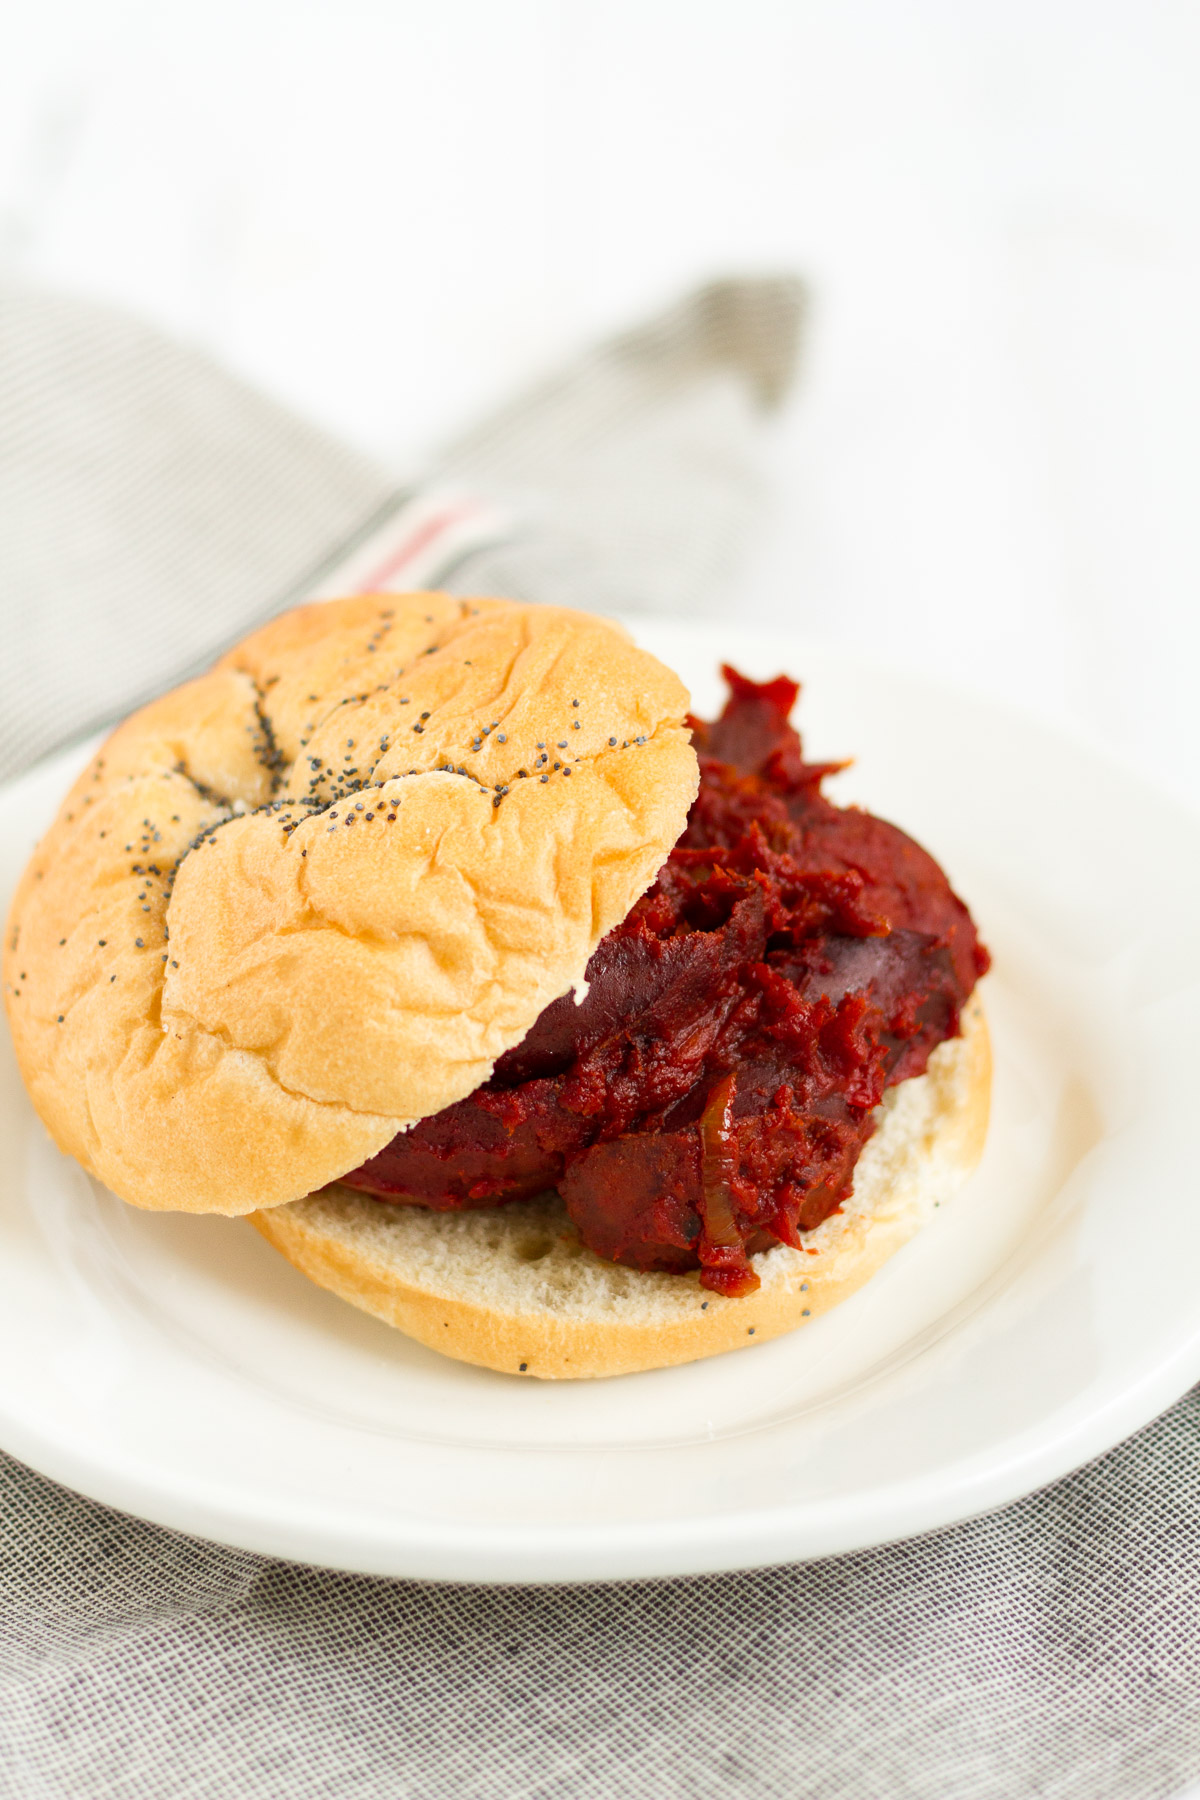 Tomato-braised sausage sandwiches with onions and peppers